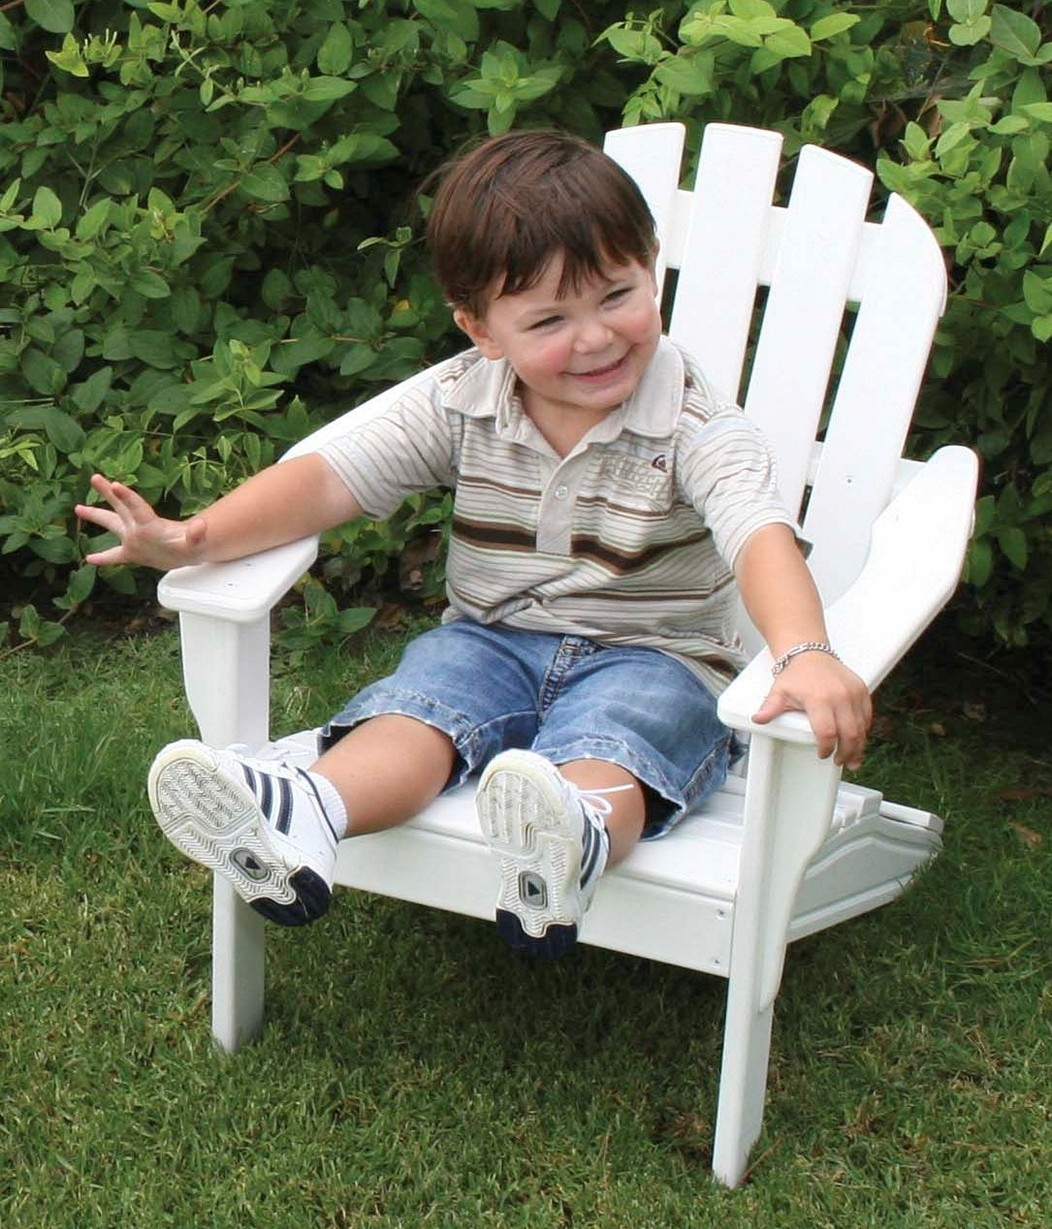 Childrens Plastic Adirondack Chairs Handmade Wood Chair For Home Awesome Appearance Of Kids